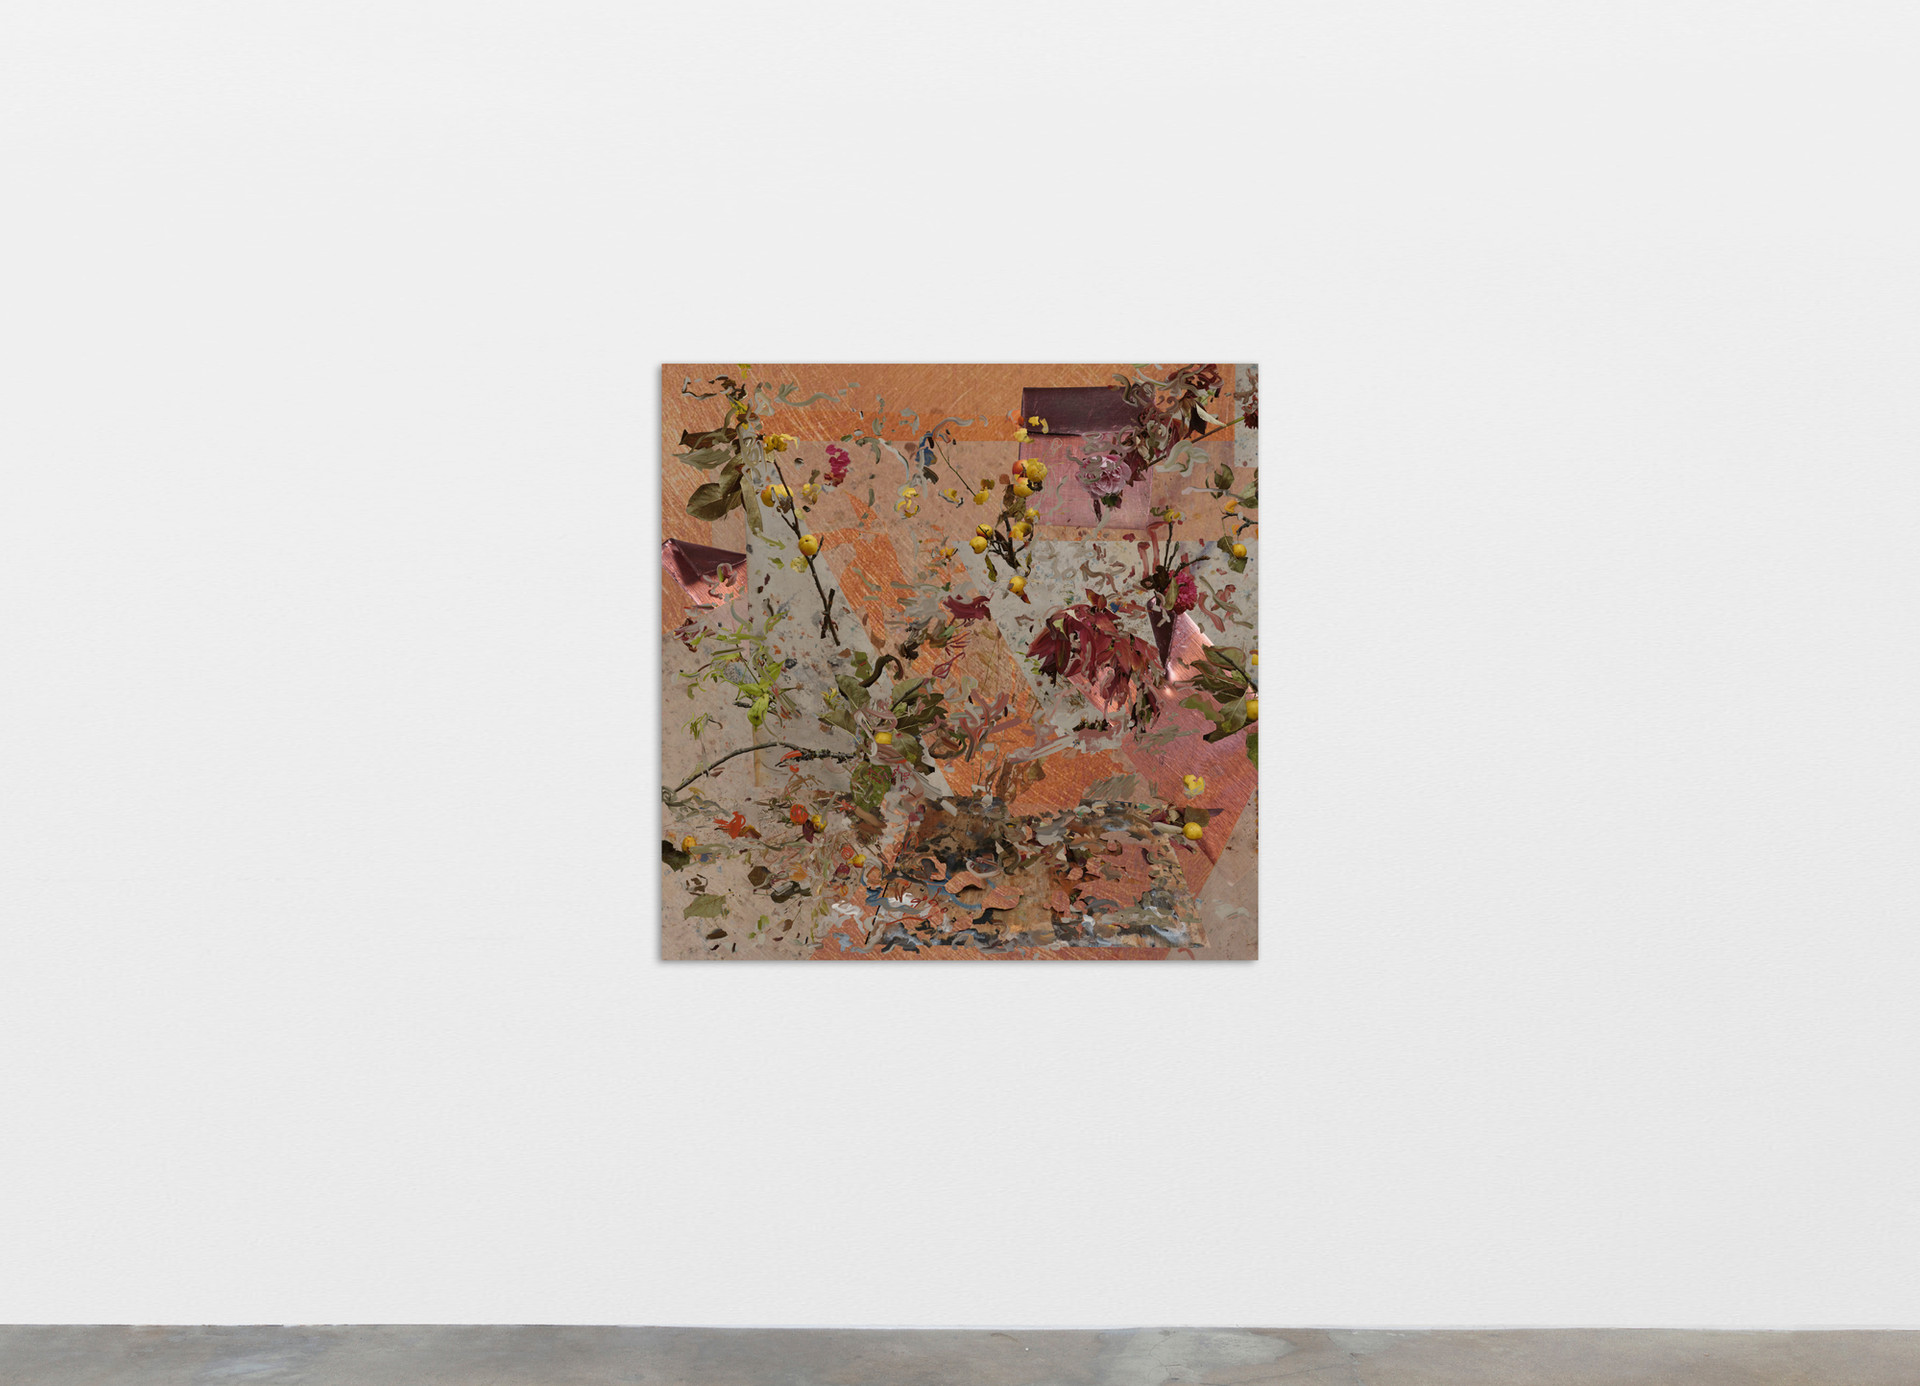 """Petra Cortright """"gertrude stein standard poodle""""_GRANDTHEFT AUTO, 2020 Digital painting on anodized aluminum 83.82 x 83.82 cm 33 x 33 in"""